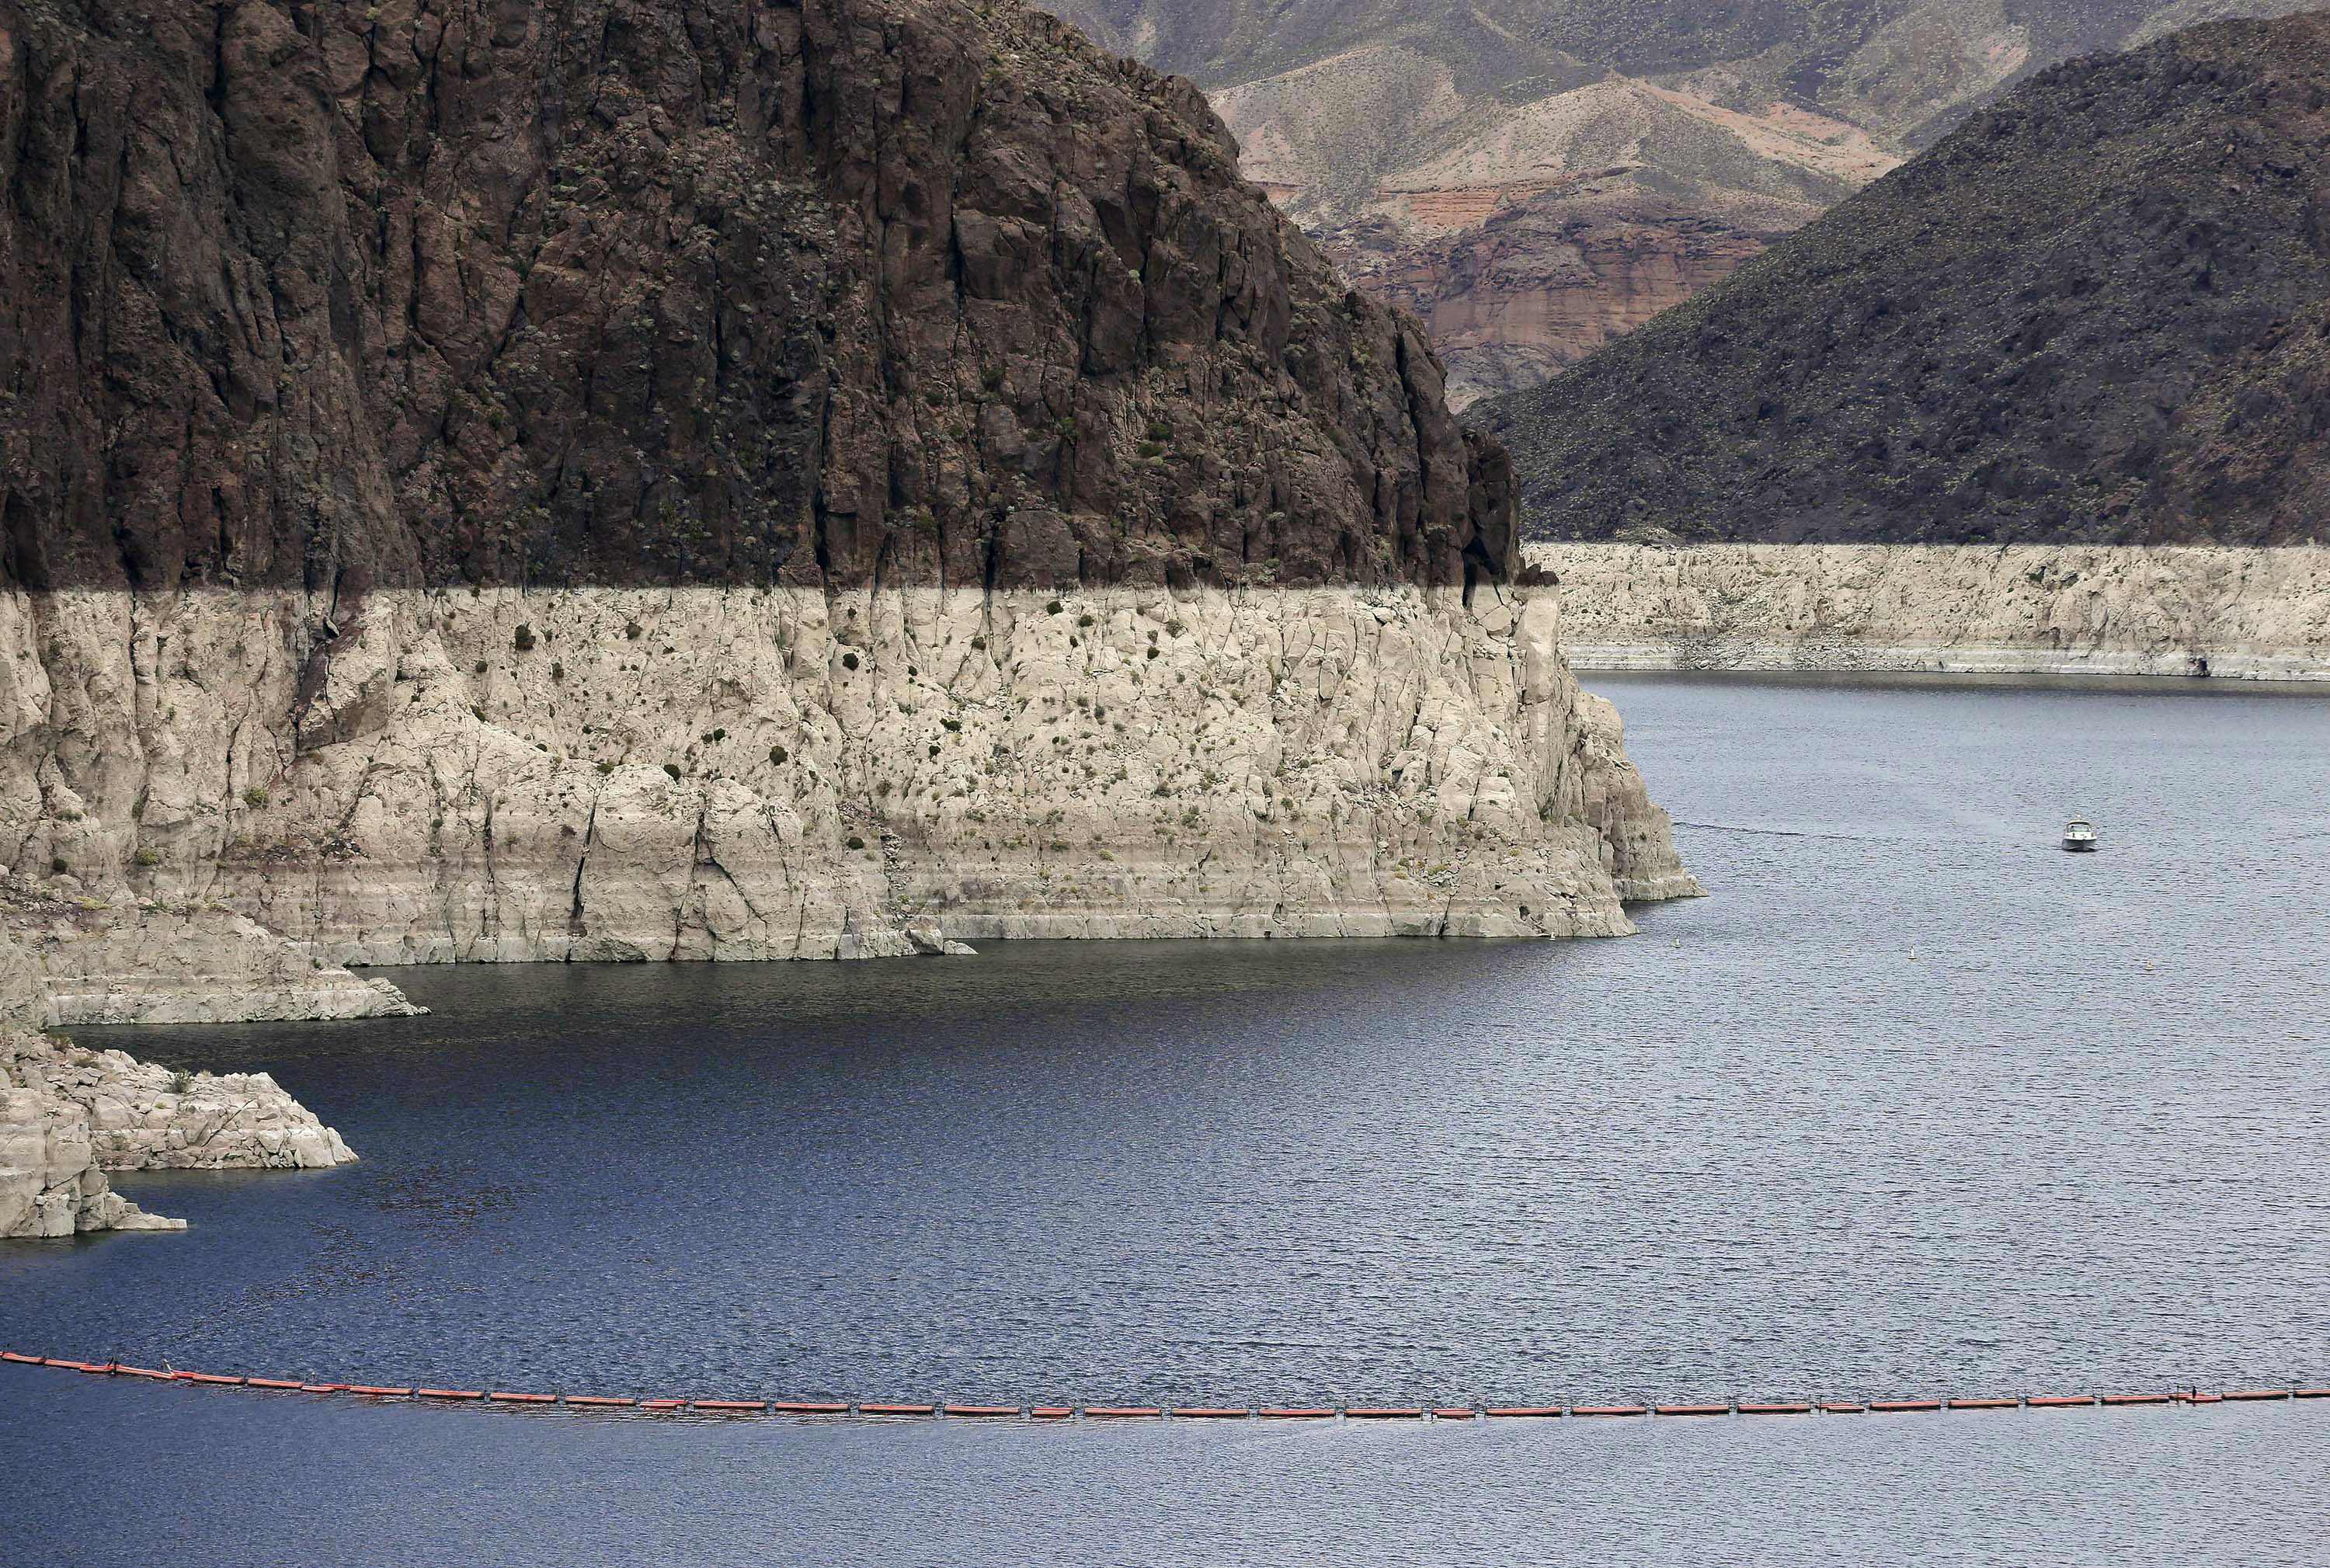 """<p>In this April 16, 2013, file photo, a """"bathtub ring"""" shows the high water mark on Lake Mead near Boulder City, Nev.</p>  <p></p>"""